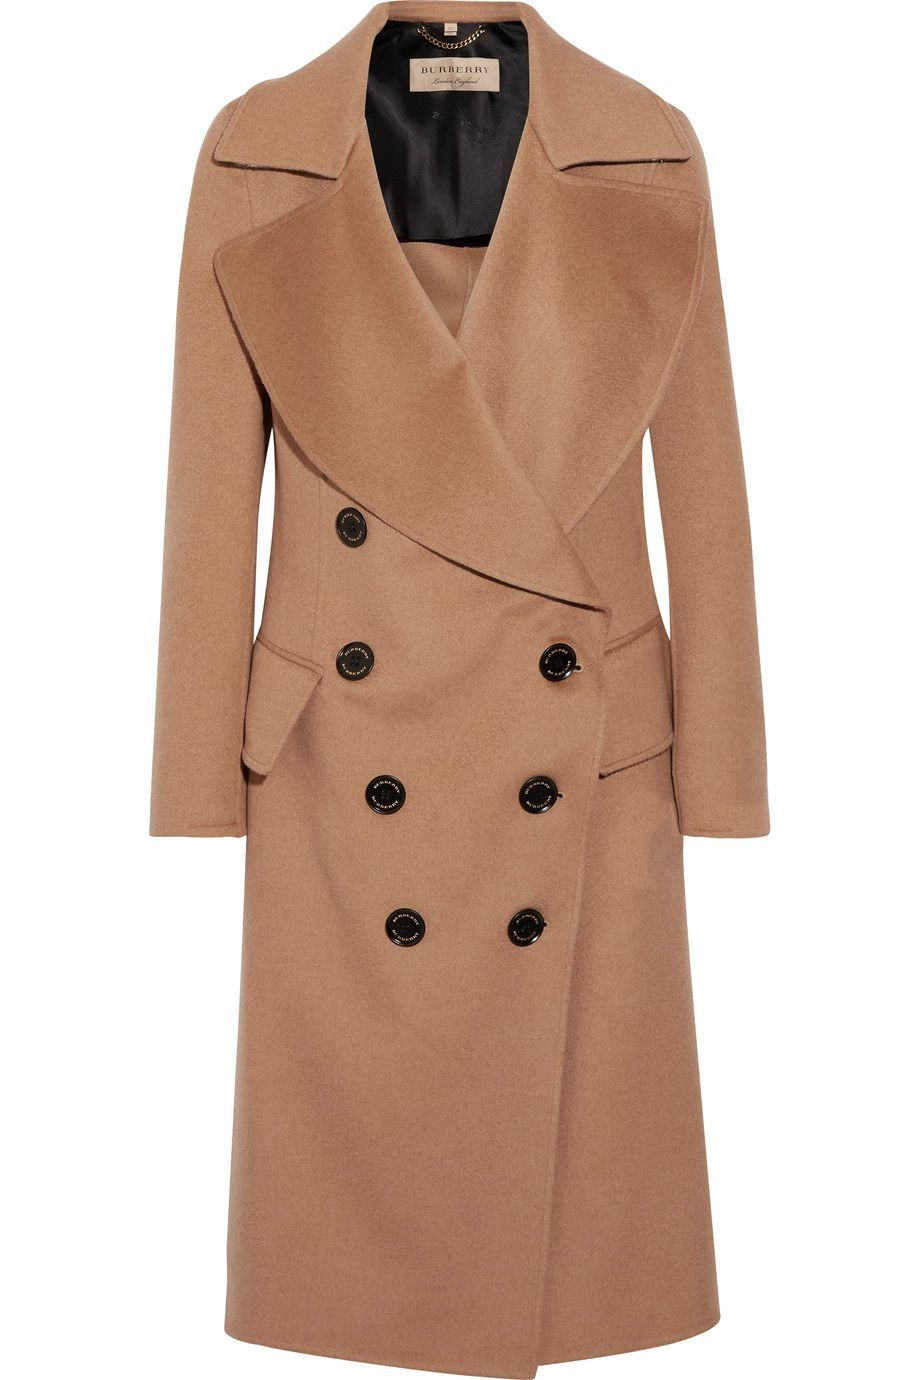 Burberry - Crewdale camel hair and wool-blend coat